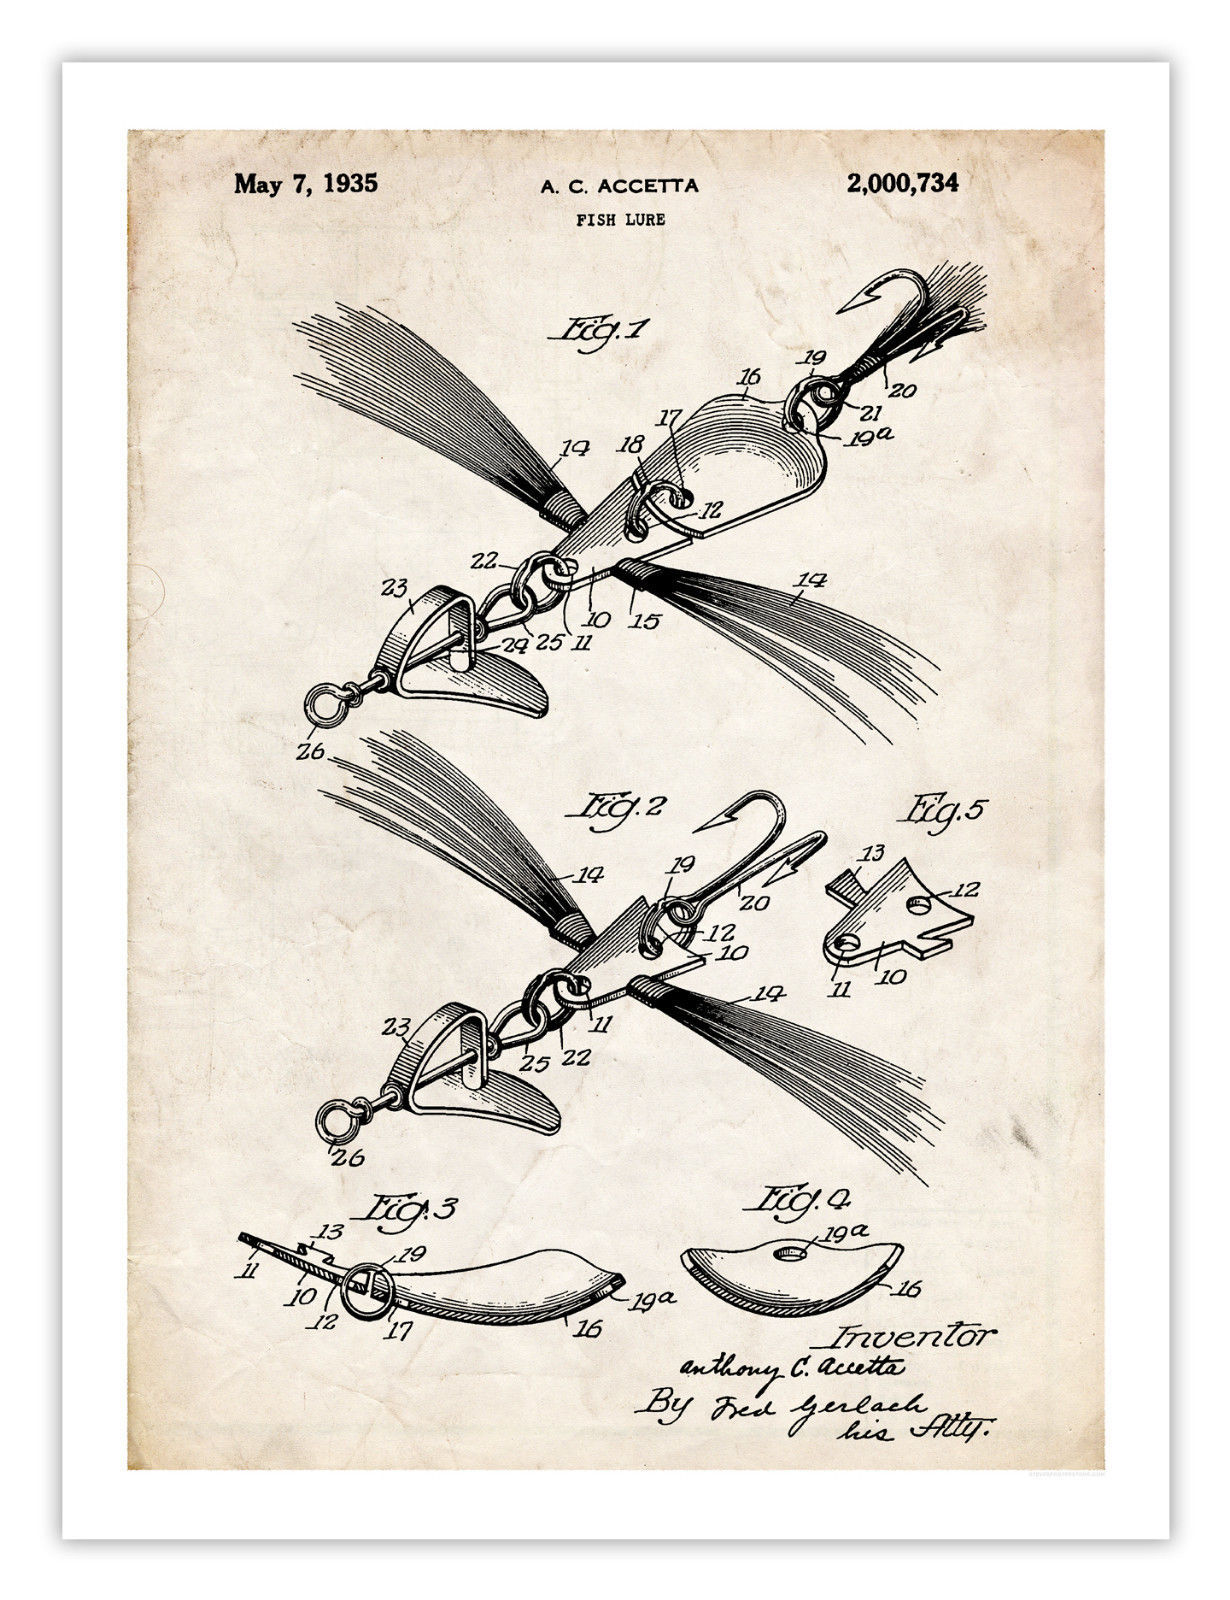 OLD FISHING LURE 1935 PATENT ART POSTER PRINT 18X24 VINTAGE FLY FISH ROD GIFT